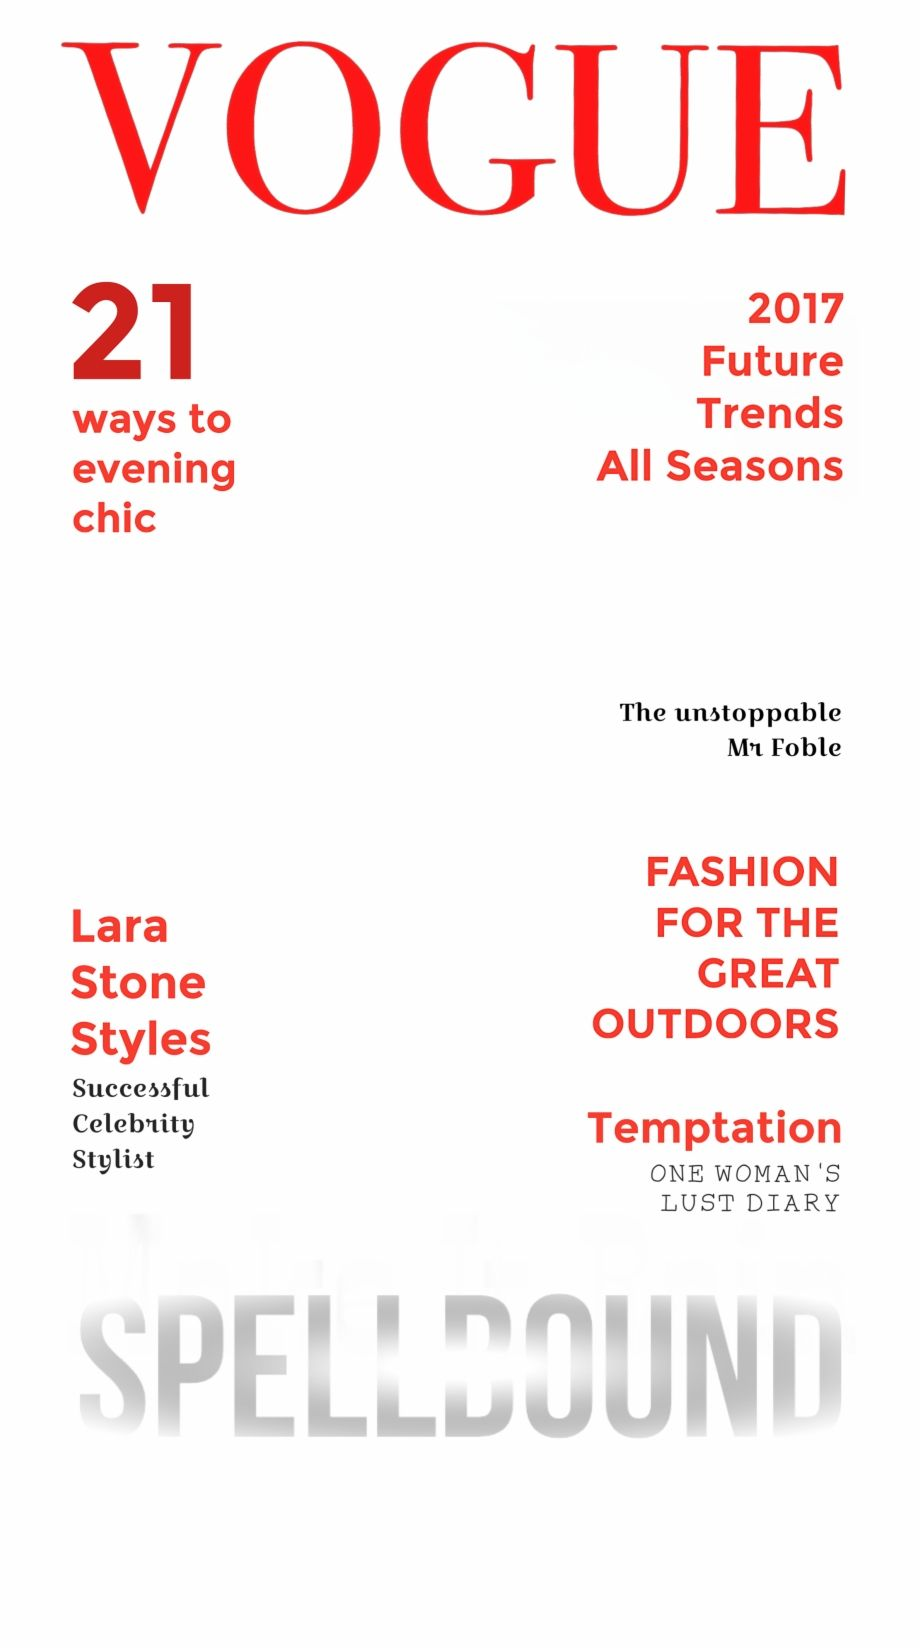 Vogue Glamour Issue Fake Magazine Cover Template Magazine Cover Template Fake Magazine Covers Vogue Magazine Covers